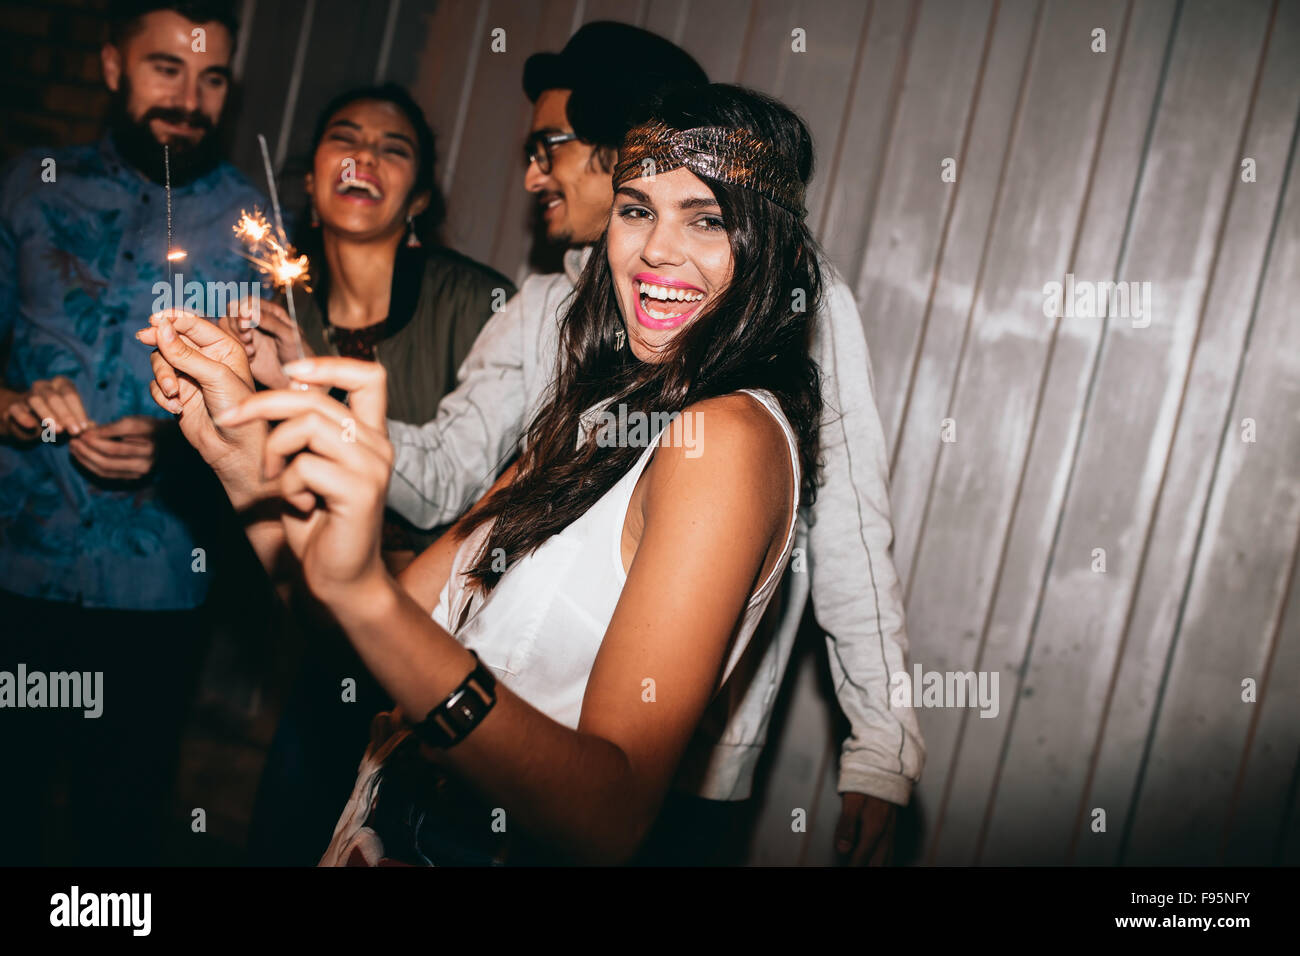 Shot of a young woman playing with sparklers at night. Best friends celebrating 4th of july outdoors. Stock Photo